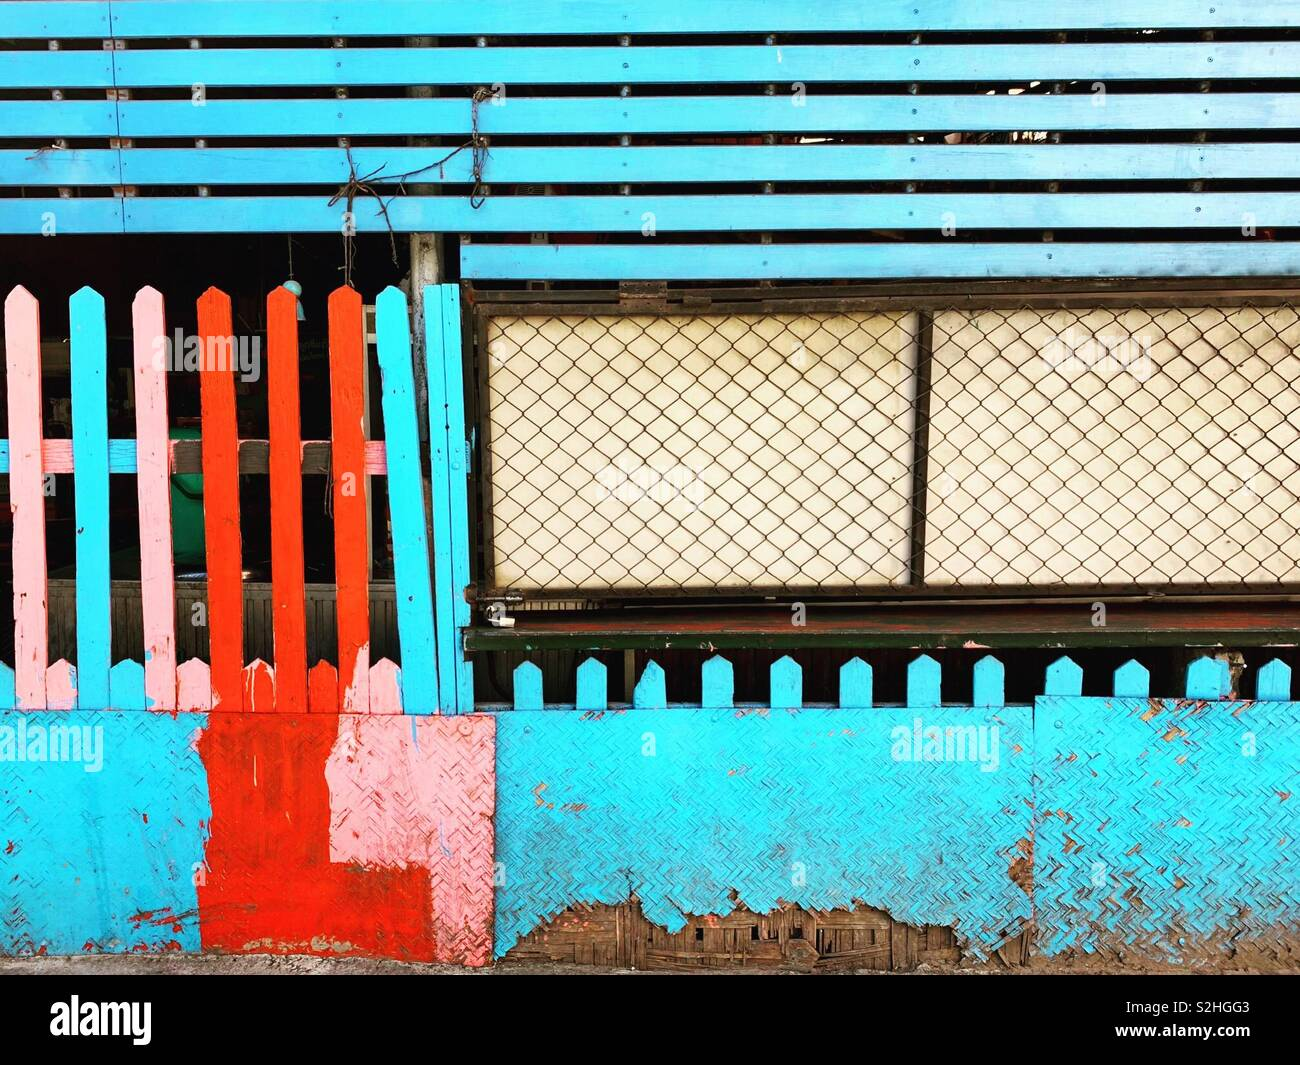 Urban decay - Stock Image